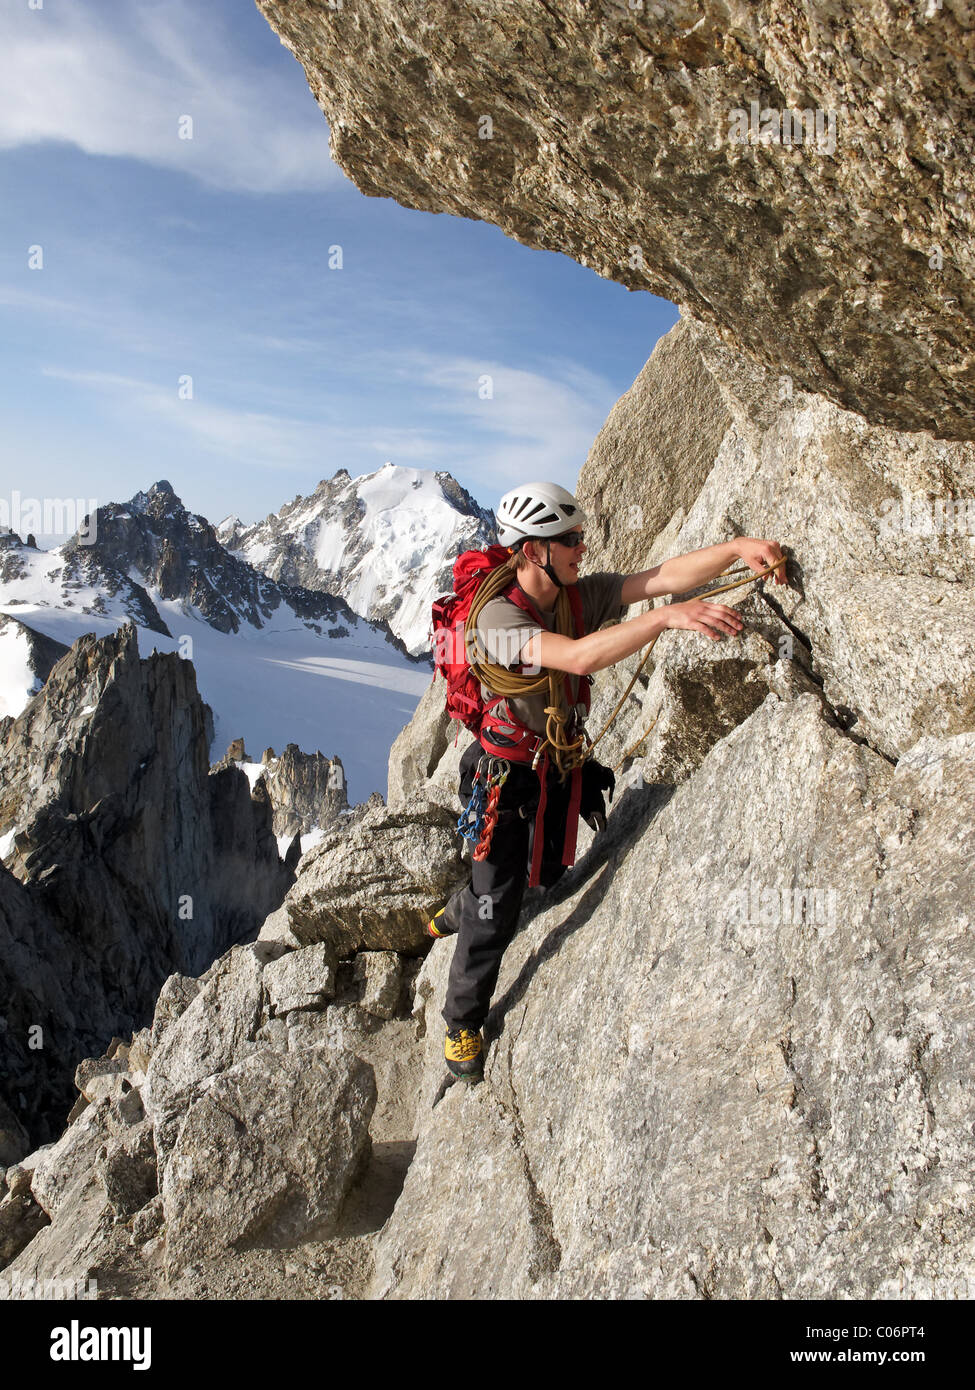 Alpine climbers on the Aiguille du Tour, in the French Alps. - Stock Image